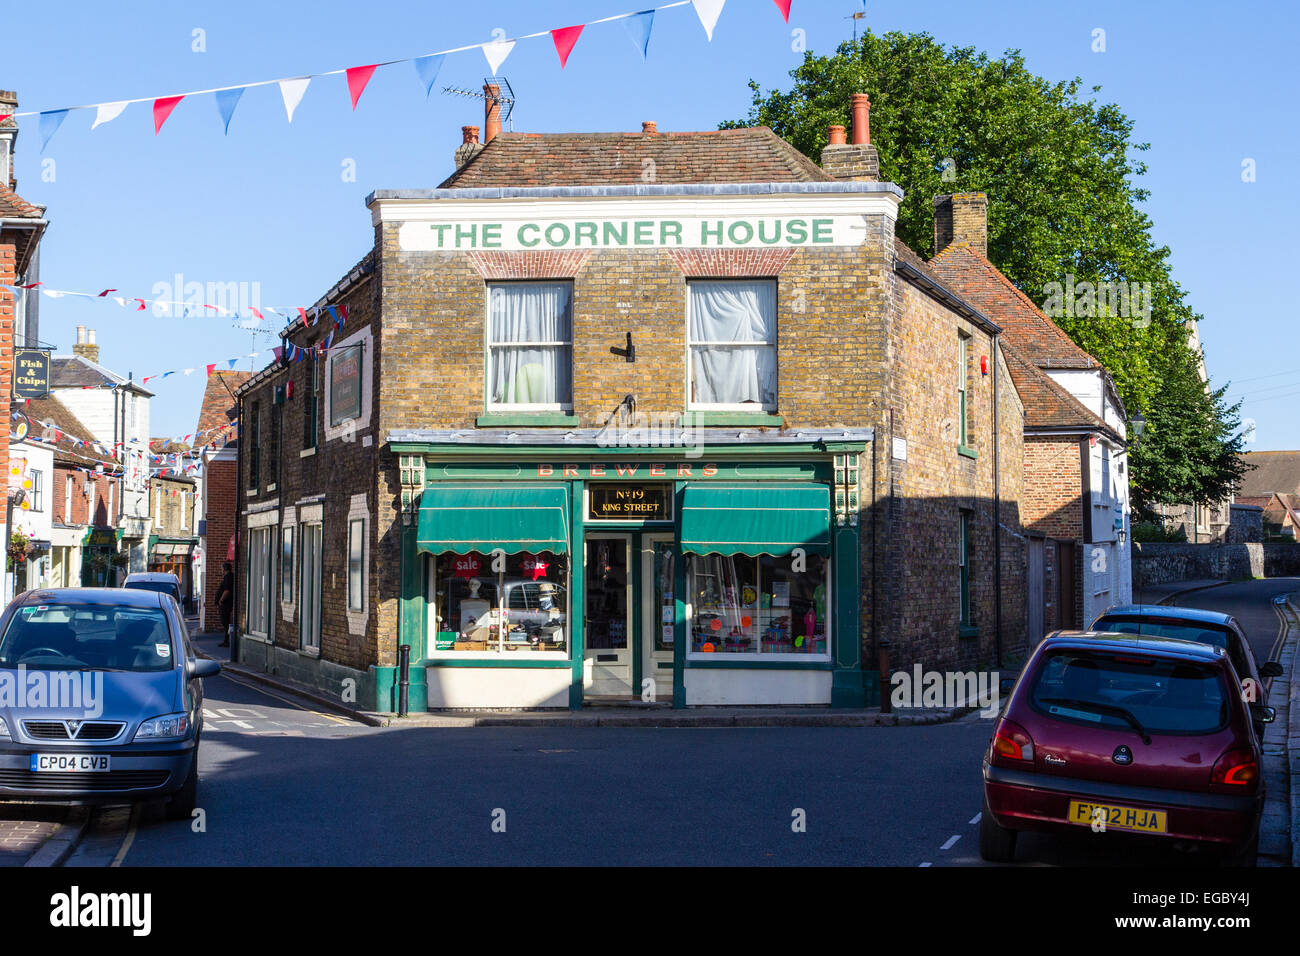 England, Sandwich. 19th century shop, 'The Corner House' Double fronted brick building at apex of two merging - Stock Image